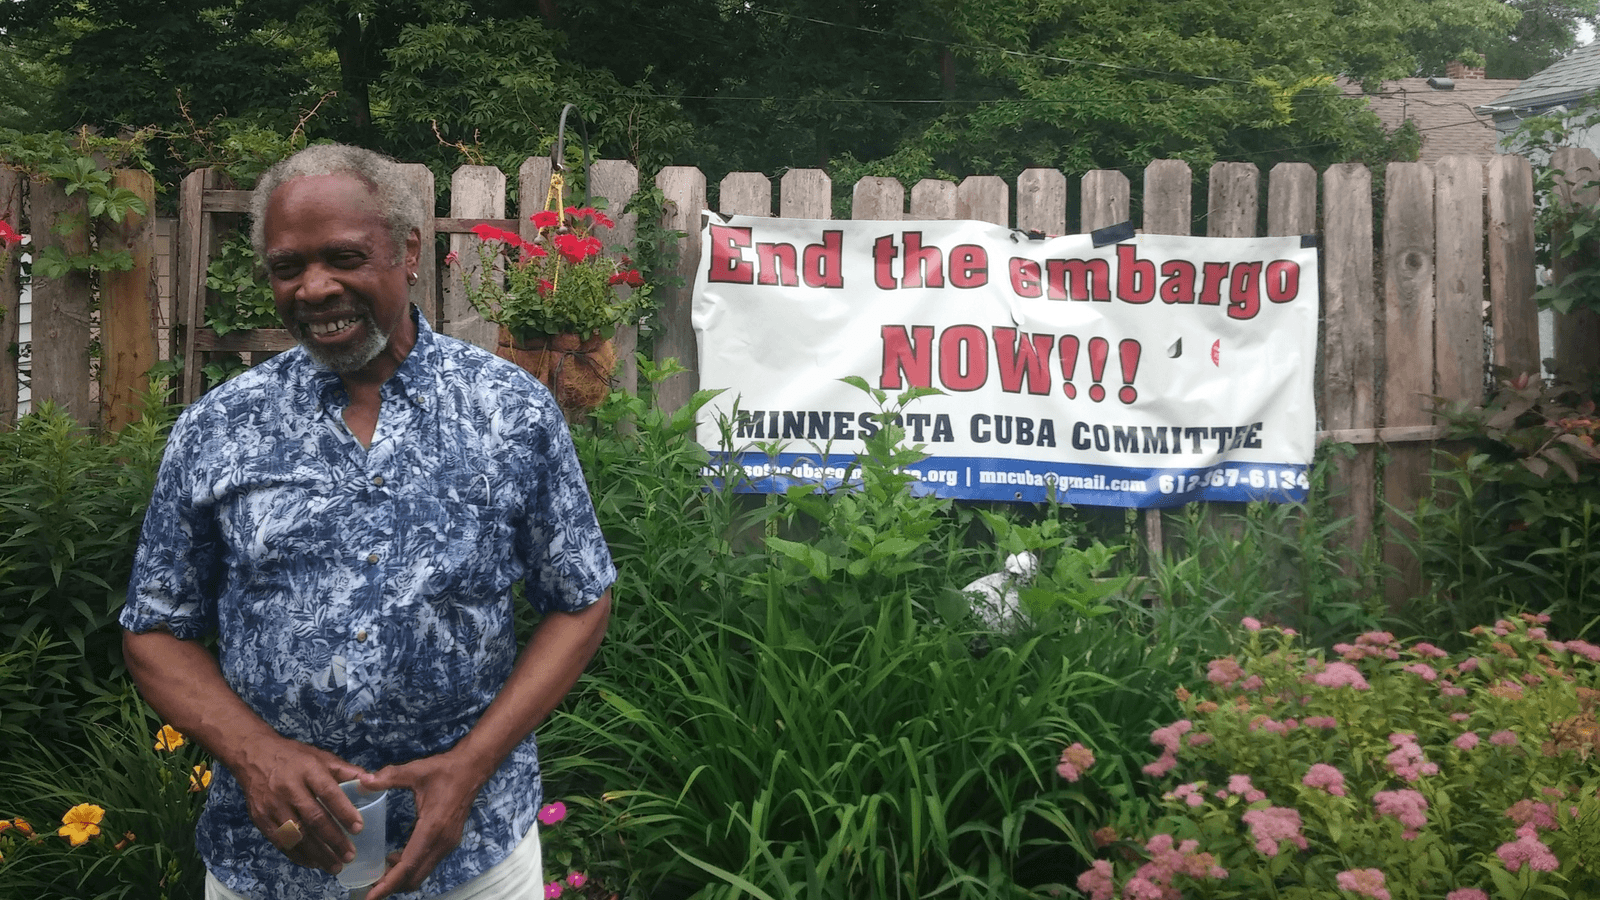 a meeting of a pro-cuba group in minnesota